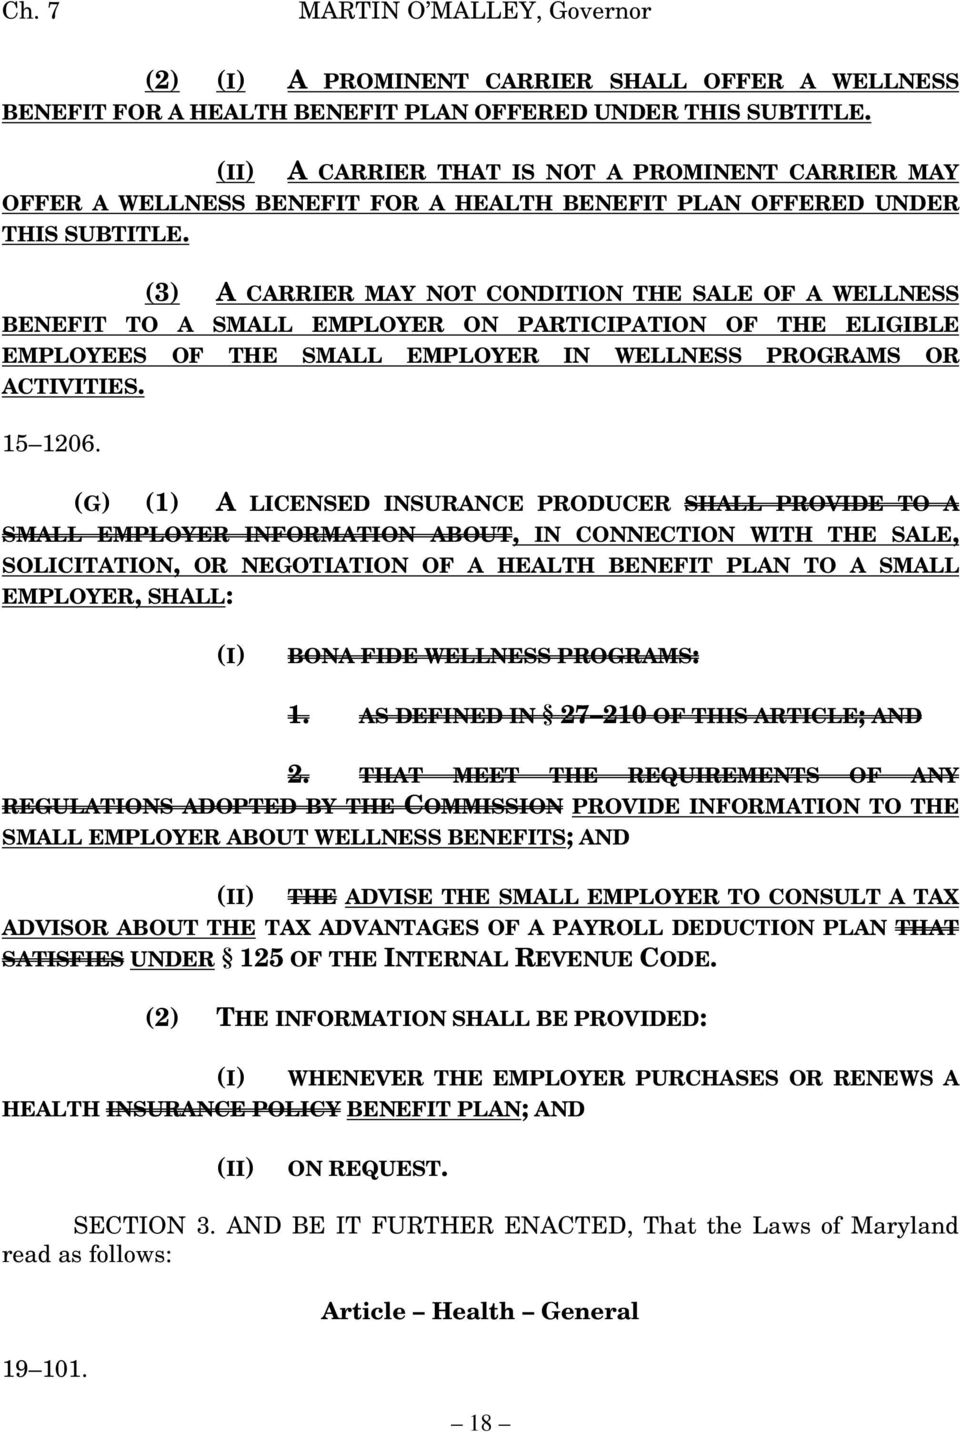 (3) A CARRIER MAY NOT CONDITION THE SALE OF A WELLNESS BENEFIT TO A SMALL EMPLOYER ON PARTICIPATION OF THE ELIGIBLE EMPLOYEES OF THE SMALL EMPLOYER IN WELLNESS PROGRAMS OR ACTIVITIES. 15 1206.